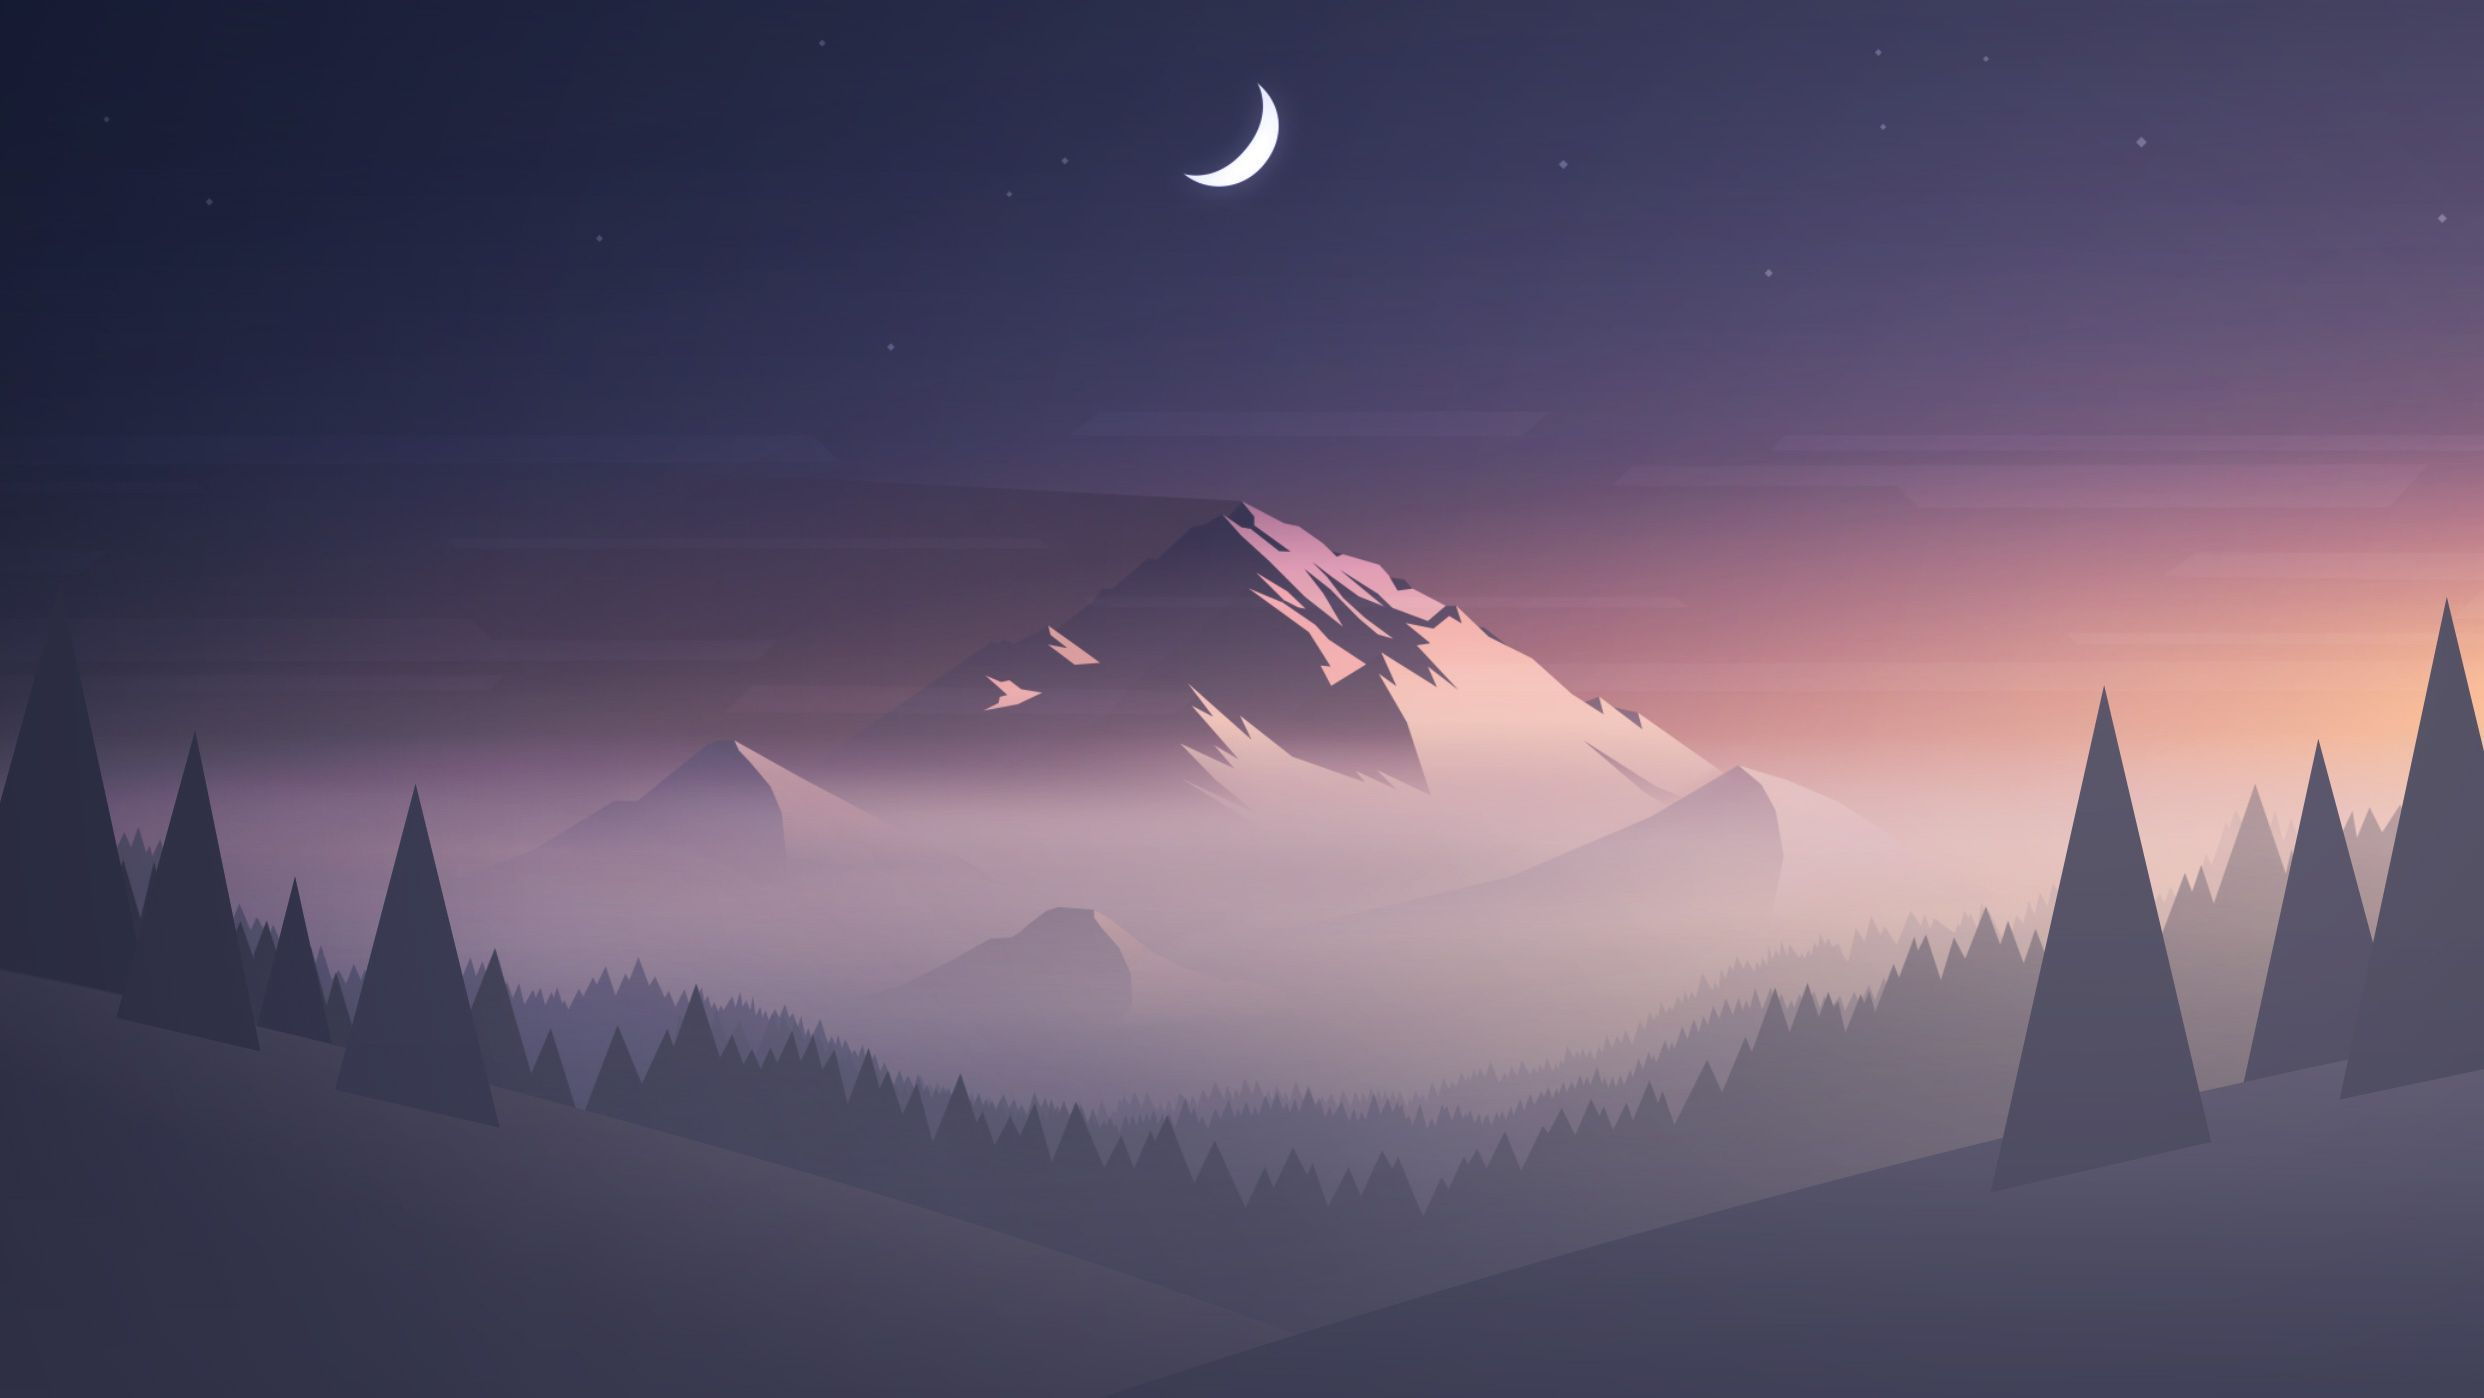 4k Minimalist Wallpapers Top Free 4k Minimalist Backgrounds